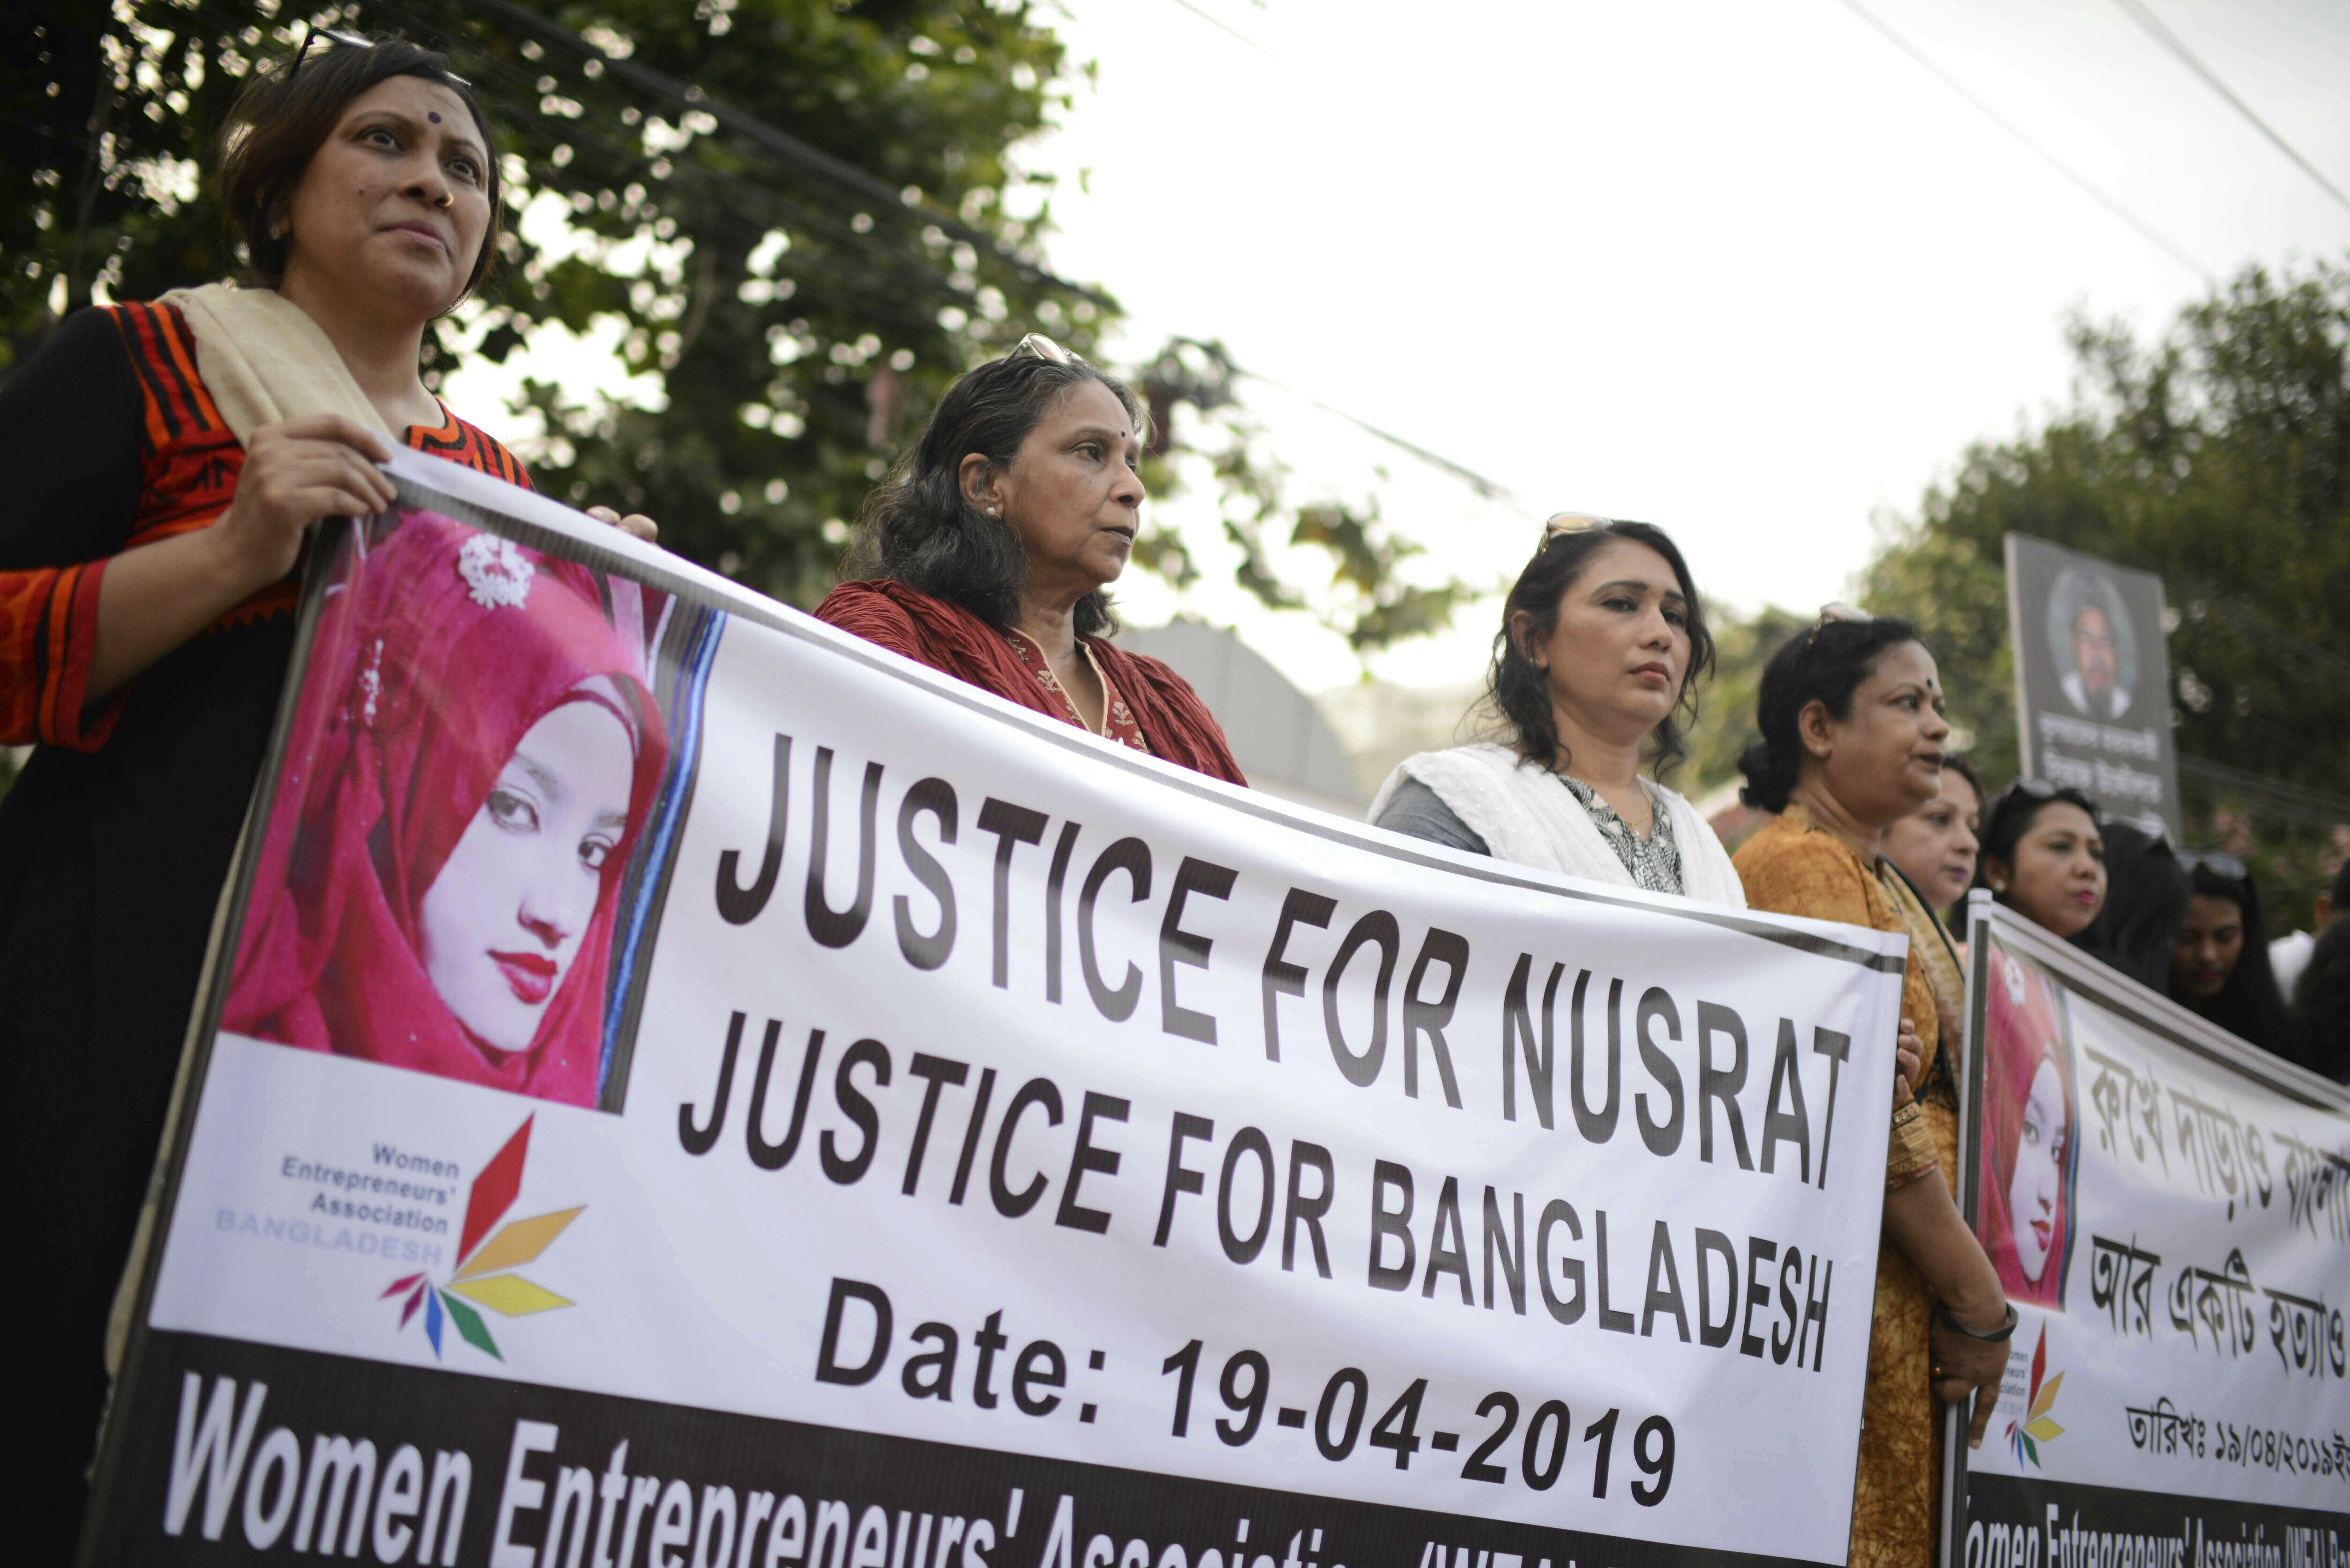 File photo, protesters gather to demand justice for Nusrat Jahan Rafi who was killed after she was set on fire for refusing to drop sexual harassment charges against her Islamic school's principal, in Dhaka, Bangladesh